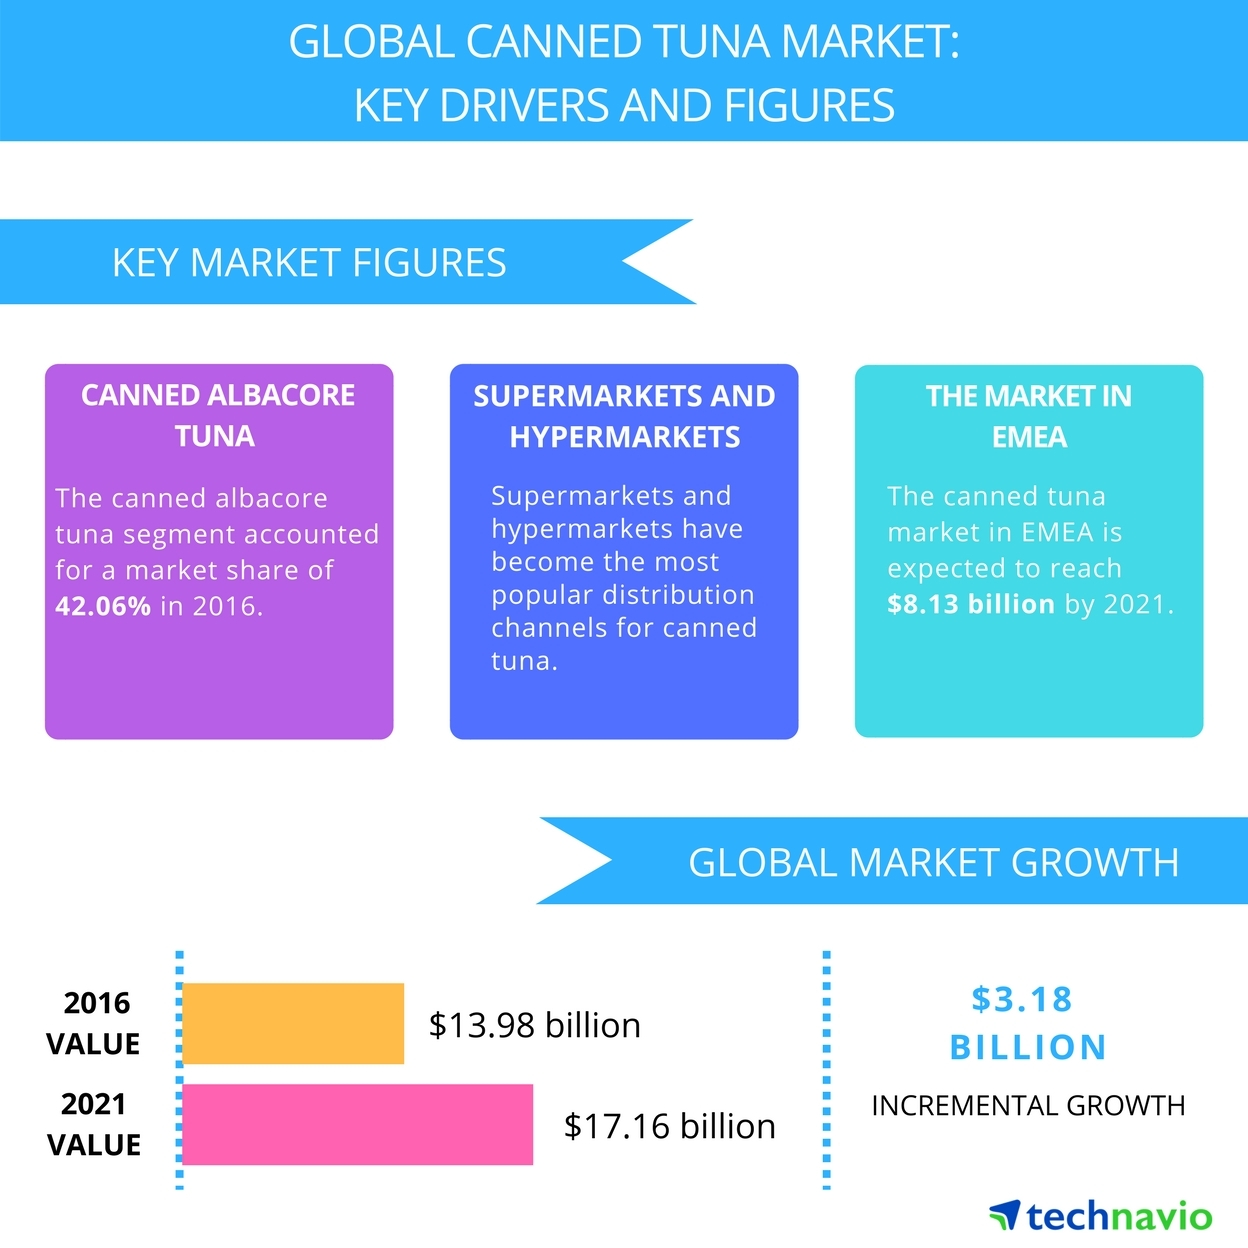 Technavio has published a new report on the global canned tuna market from 2017-2021. (Graphic: Business Wire)